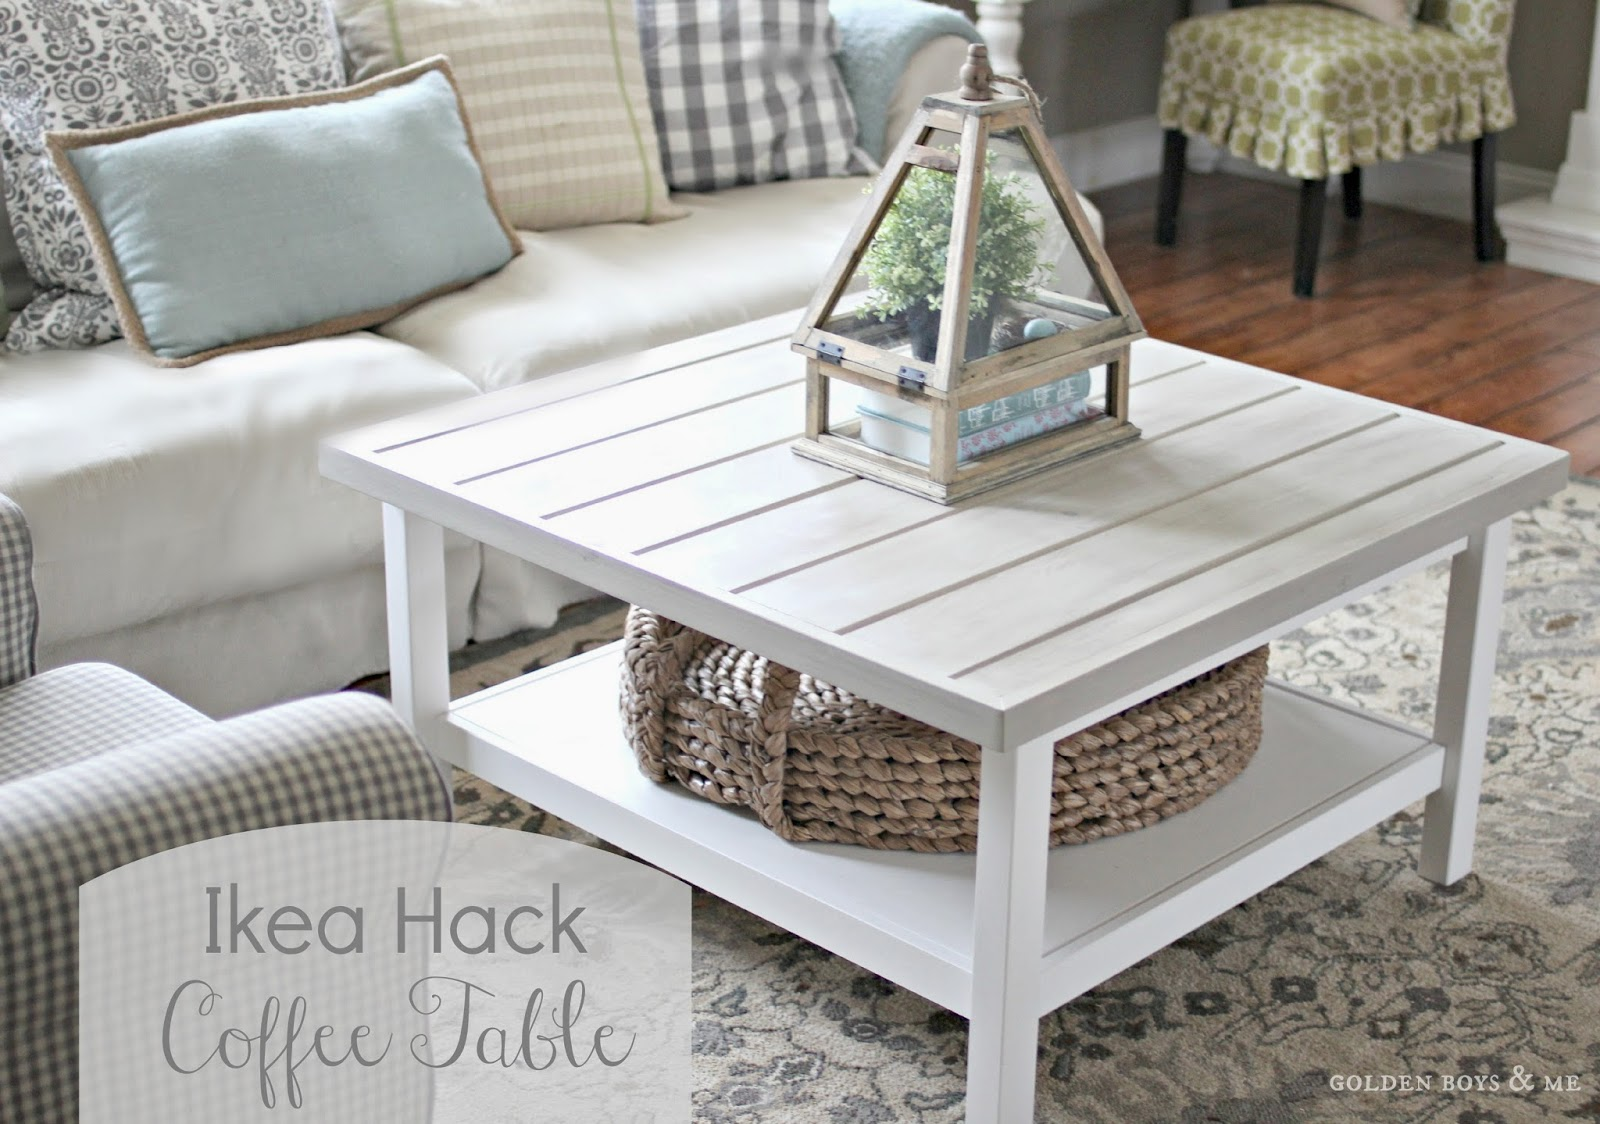 ikea coffee table images # 41